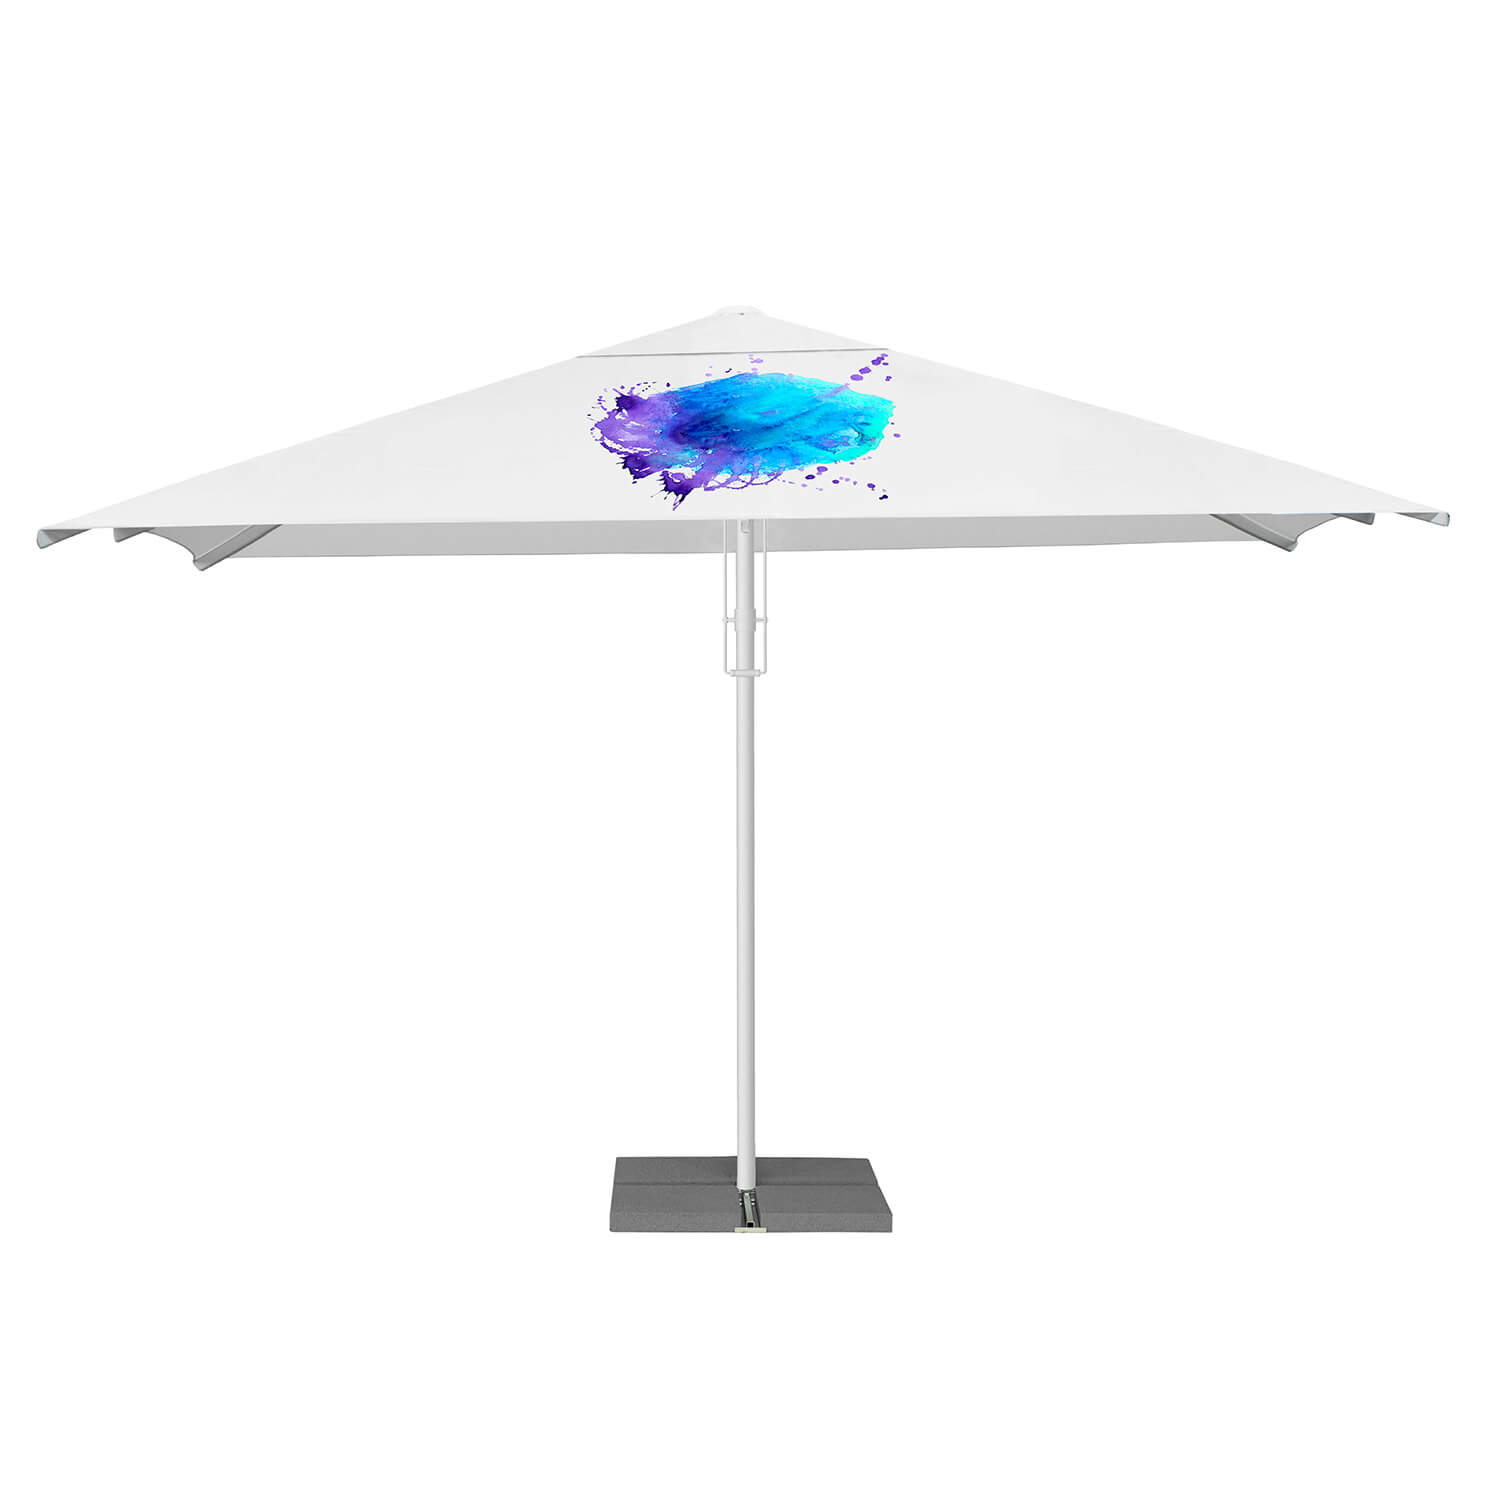 17. Strong Square Parasol 5m